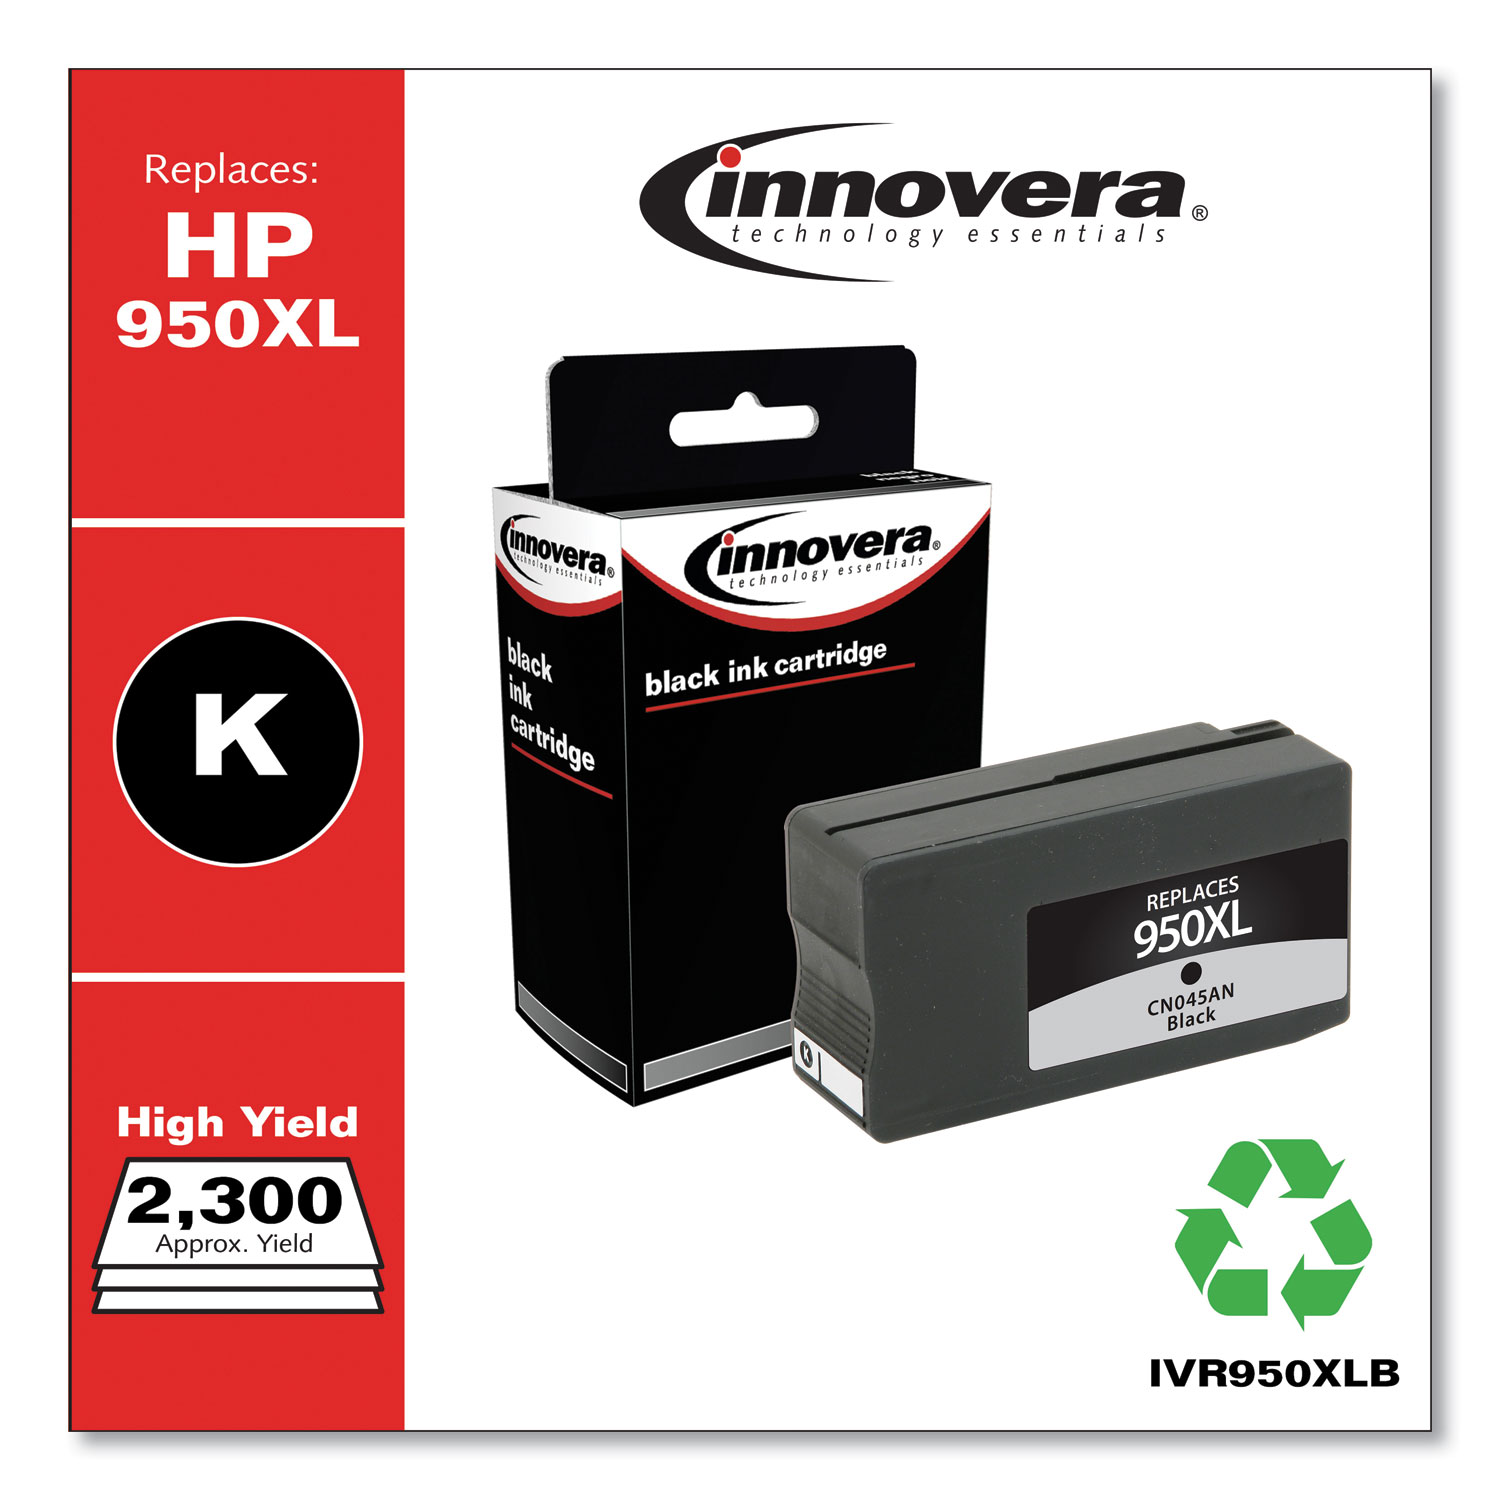 500 Page Yield - Equivalent to T410XL020 // NO 410XL SuppliesMAX Remanufactured Replacement for CIGEPC410XL020 Black High Yield Inkjet